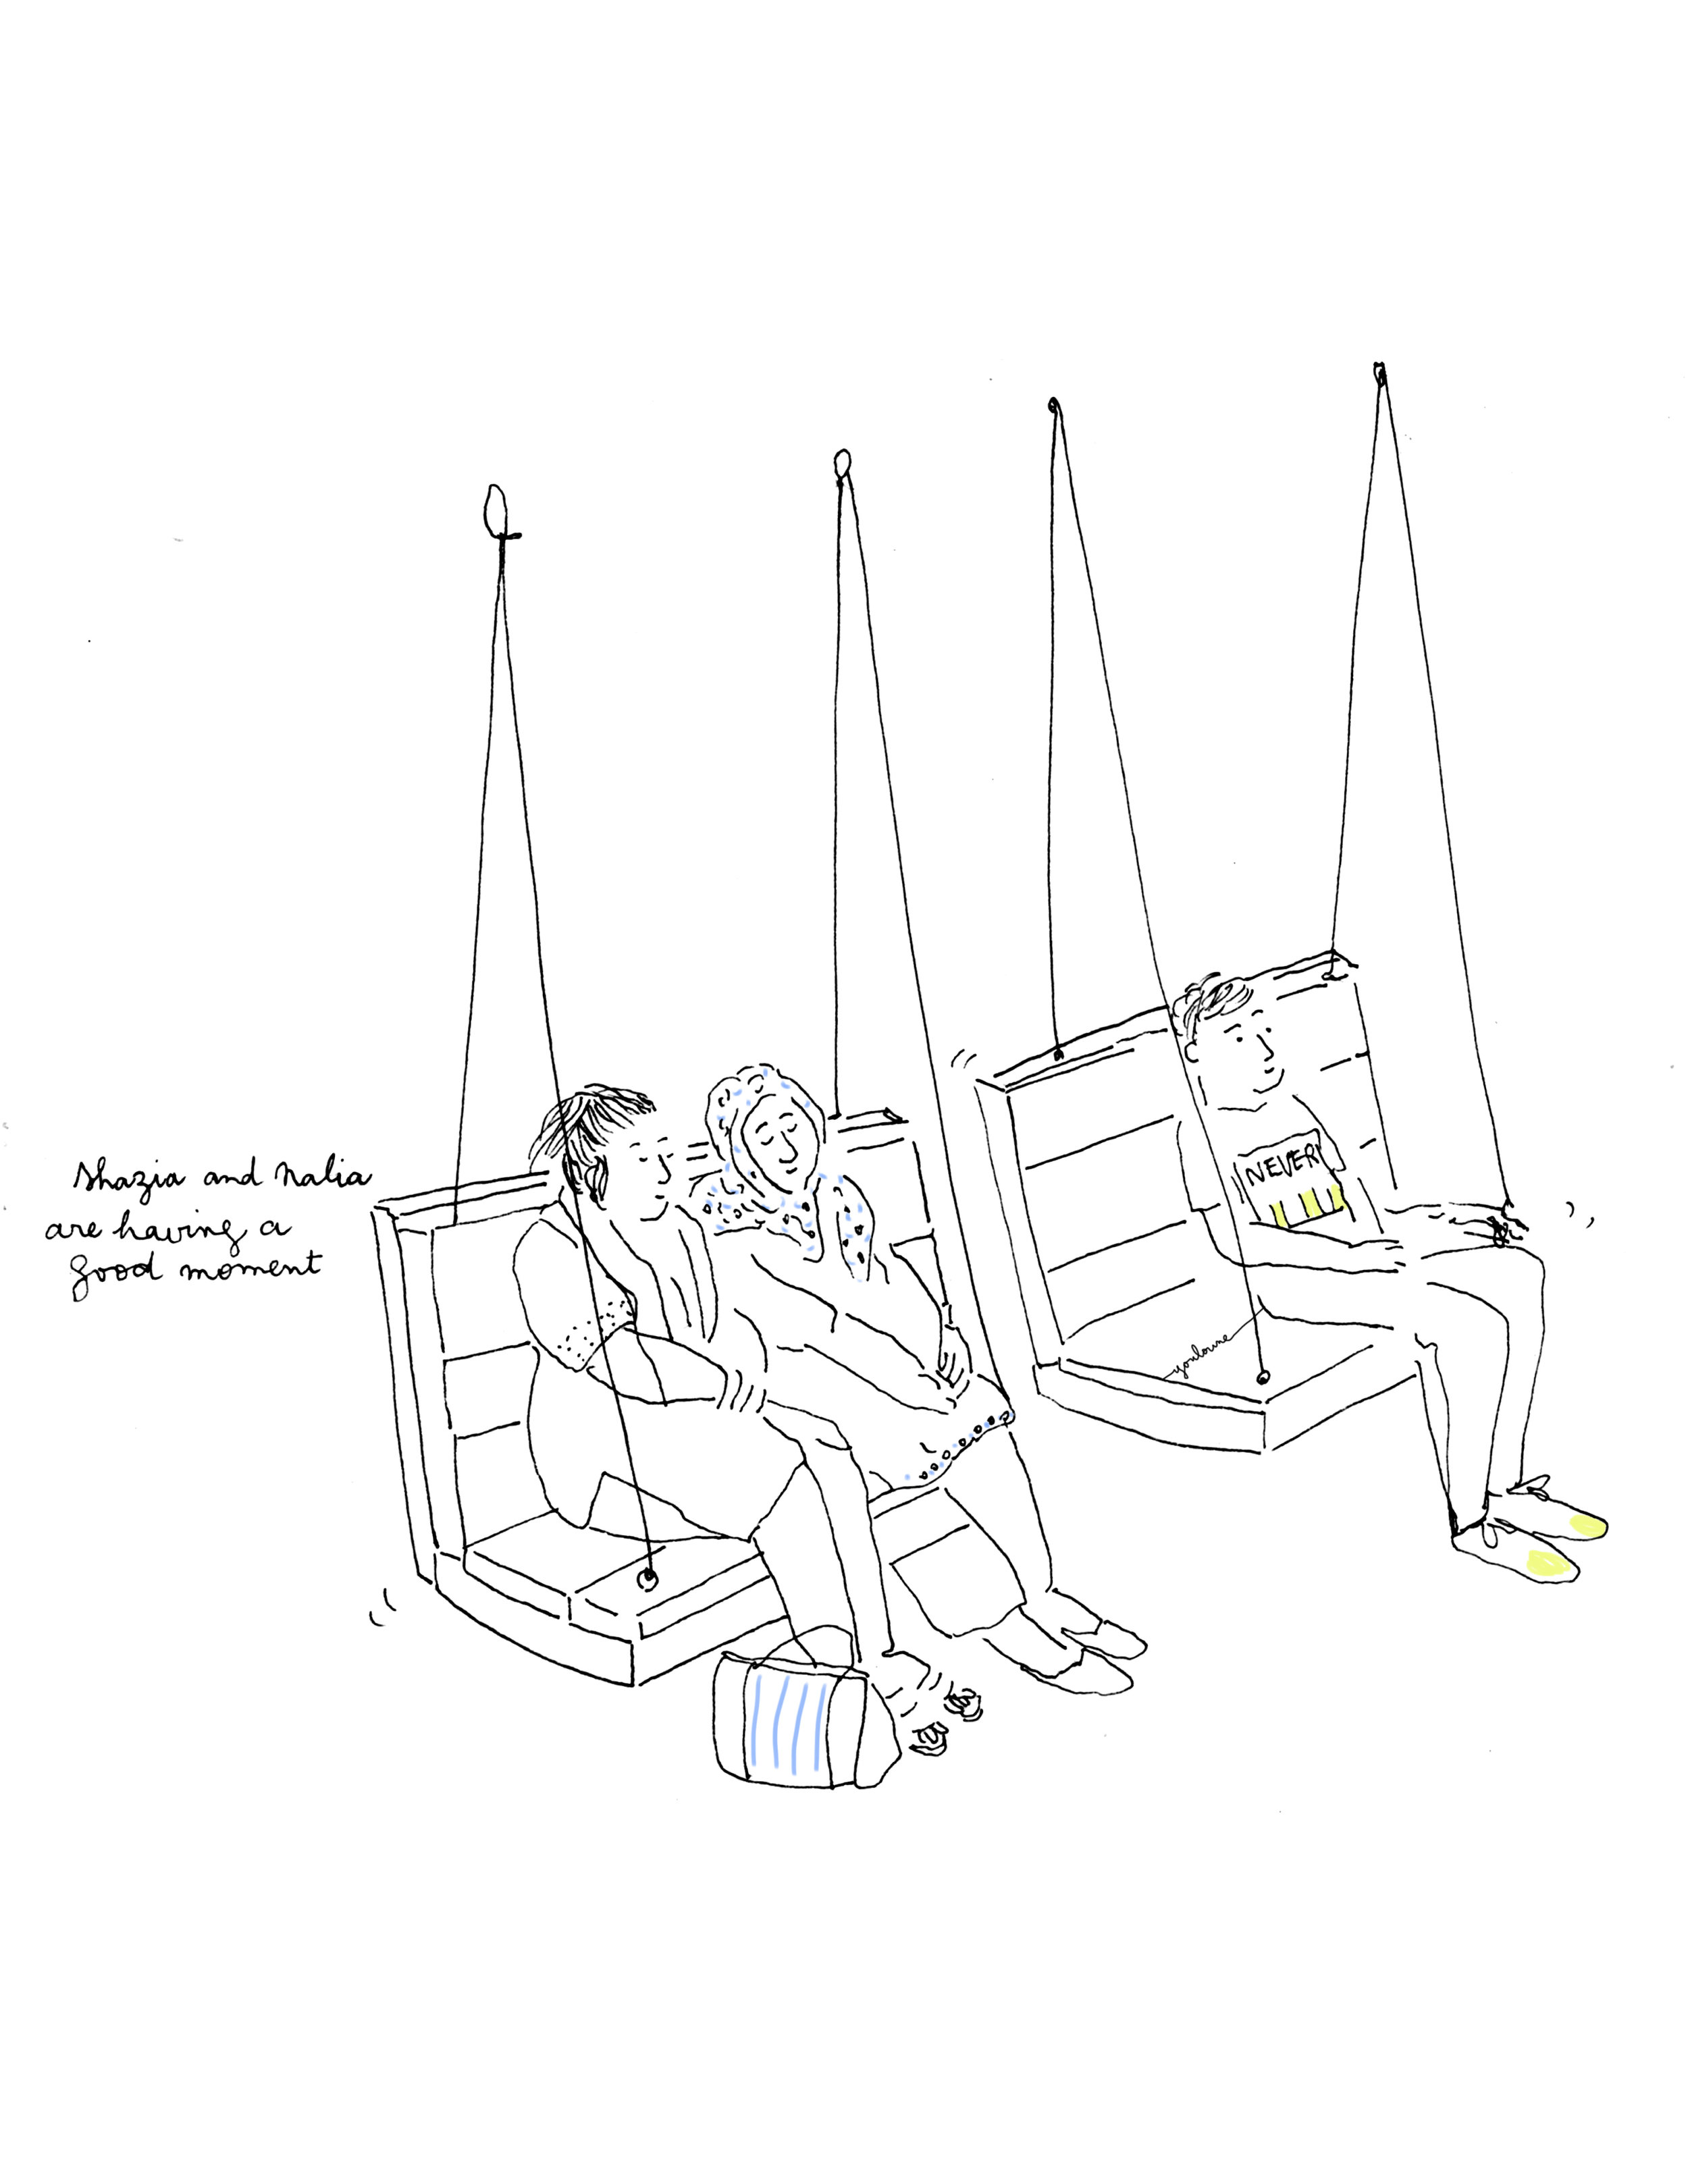 Destination MR - Croquis Youloune - Sharing.jpg